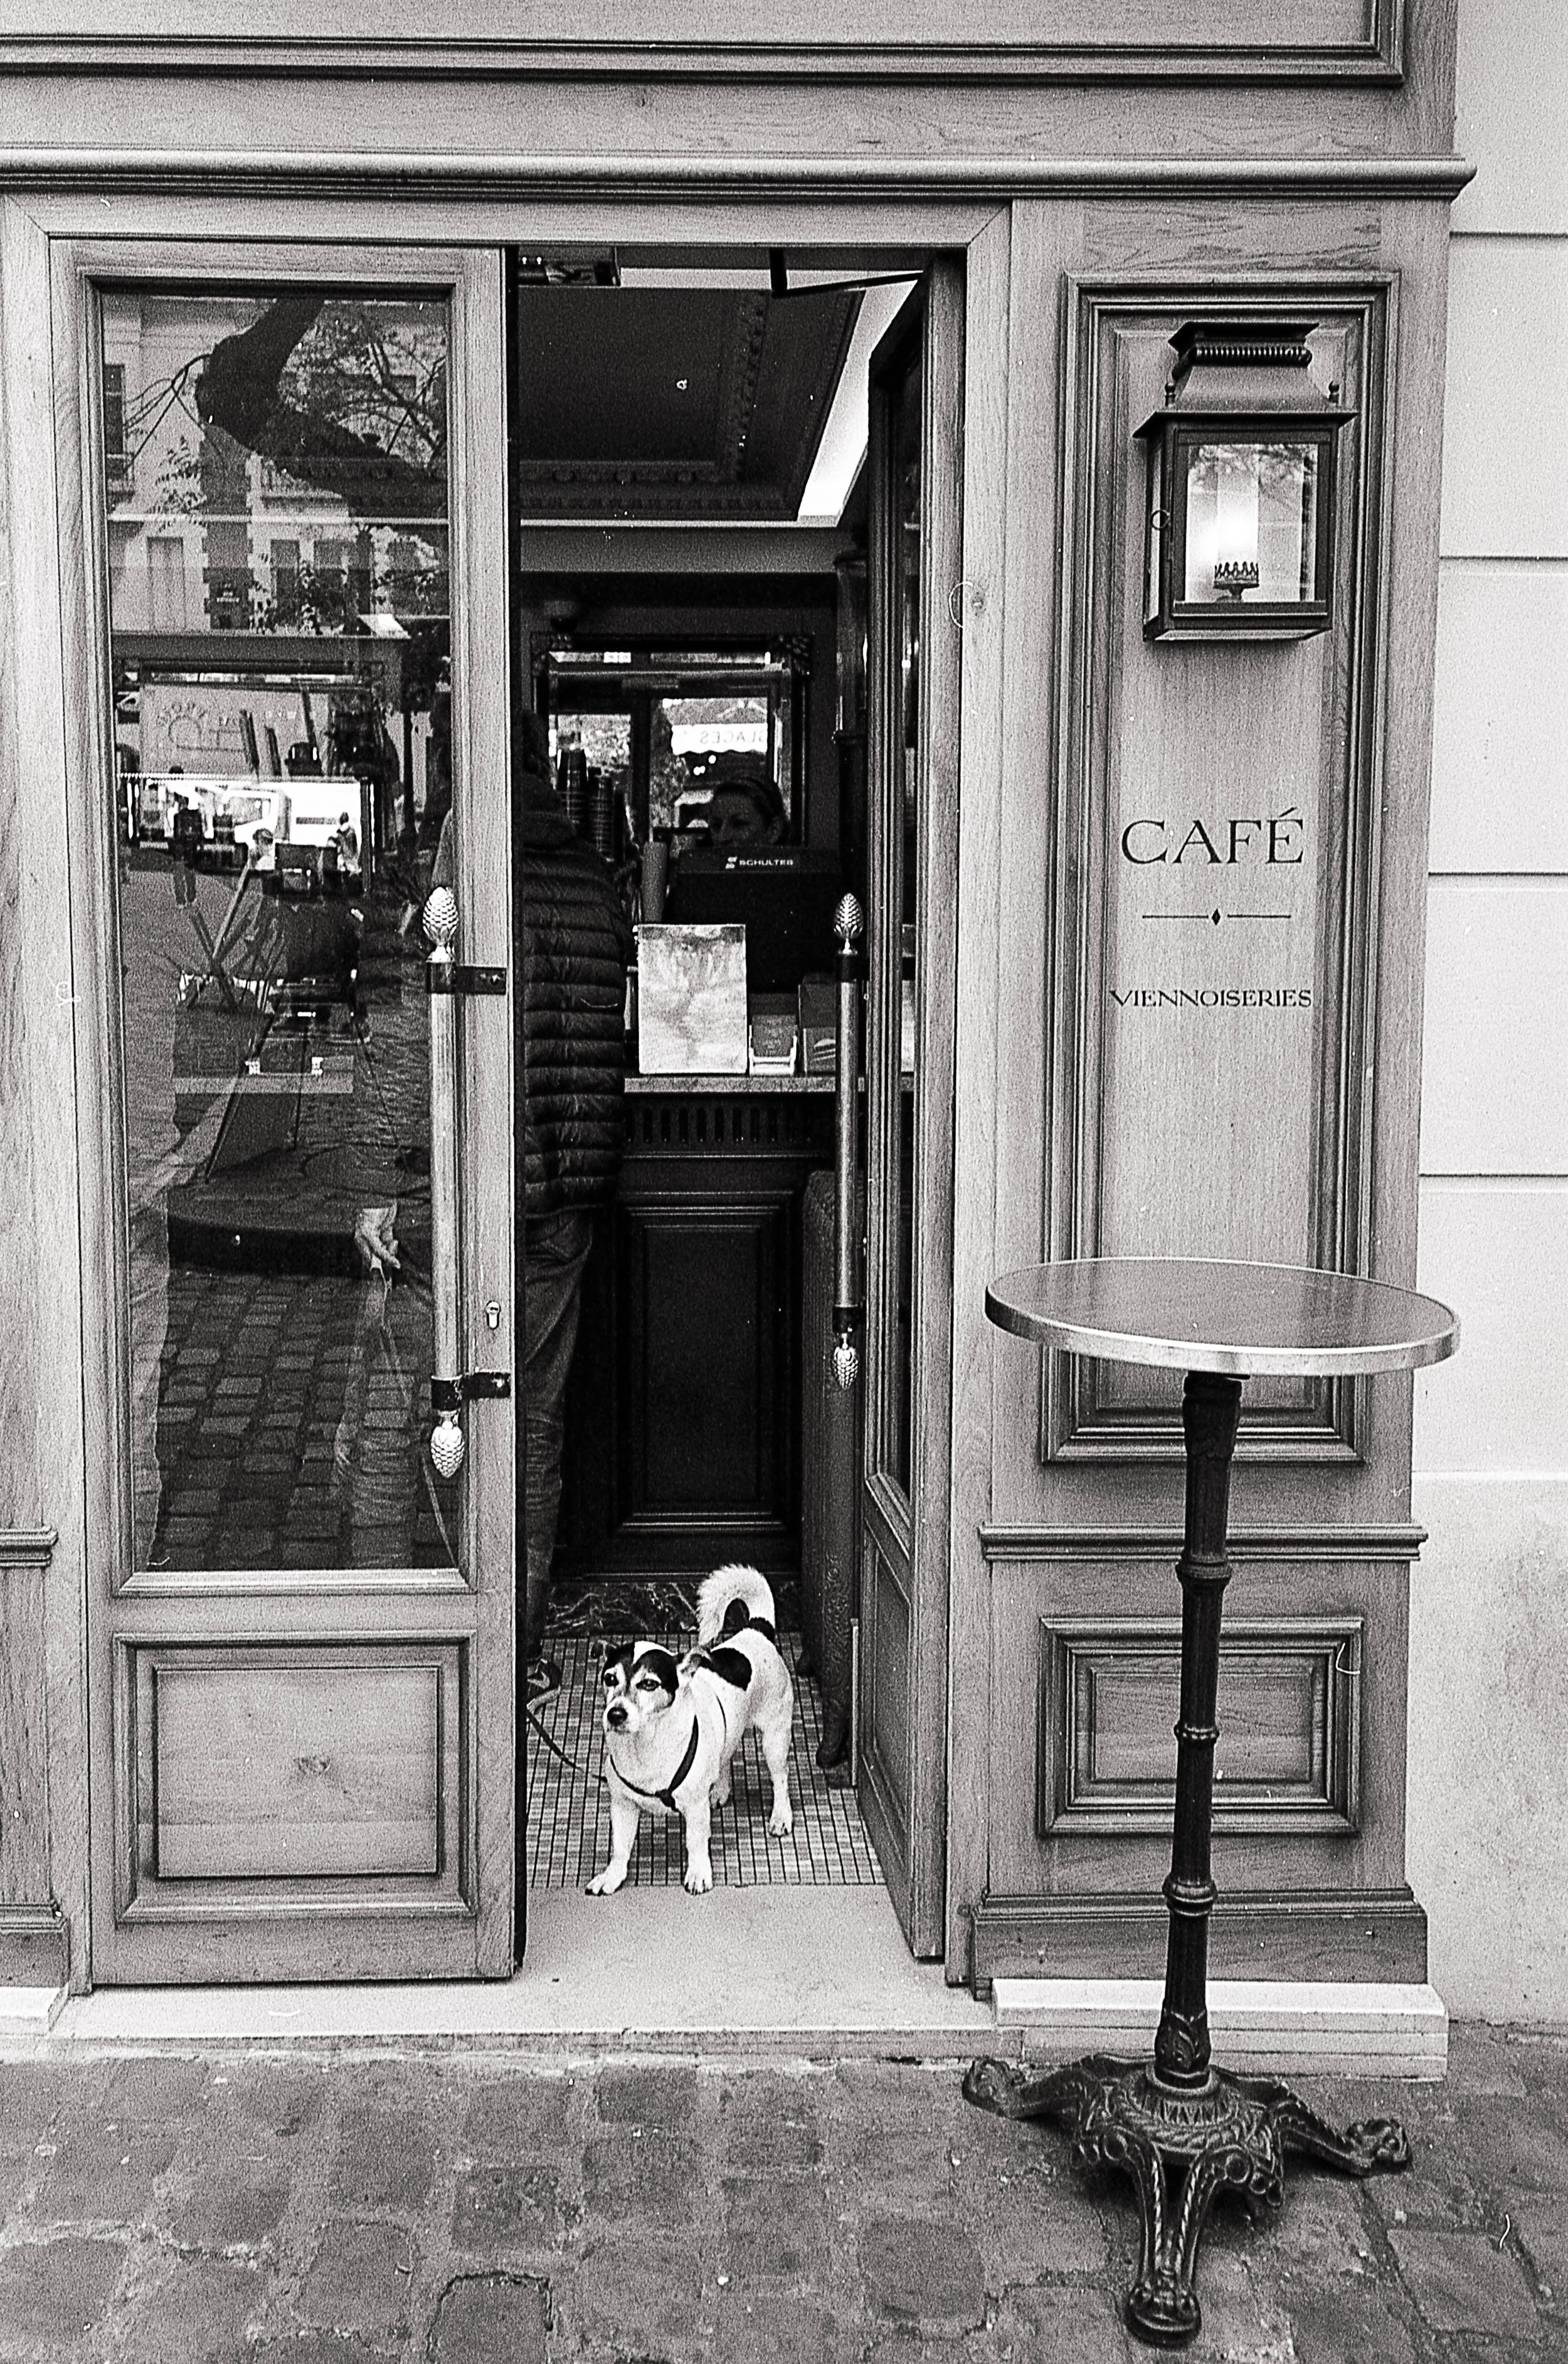 Europeans love their dogs. They are everywhere.